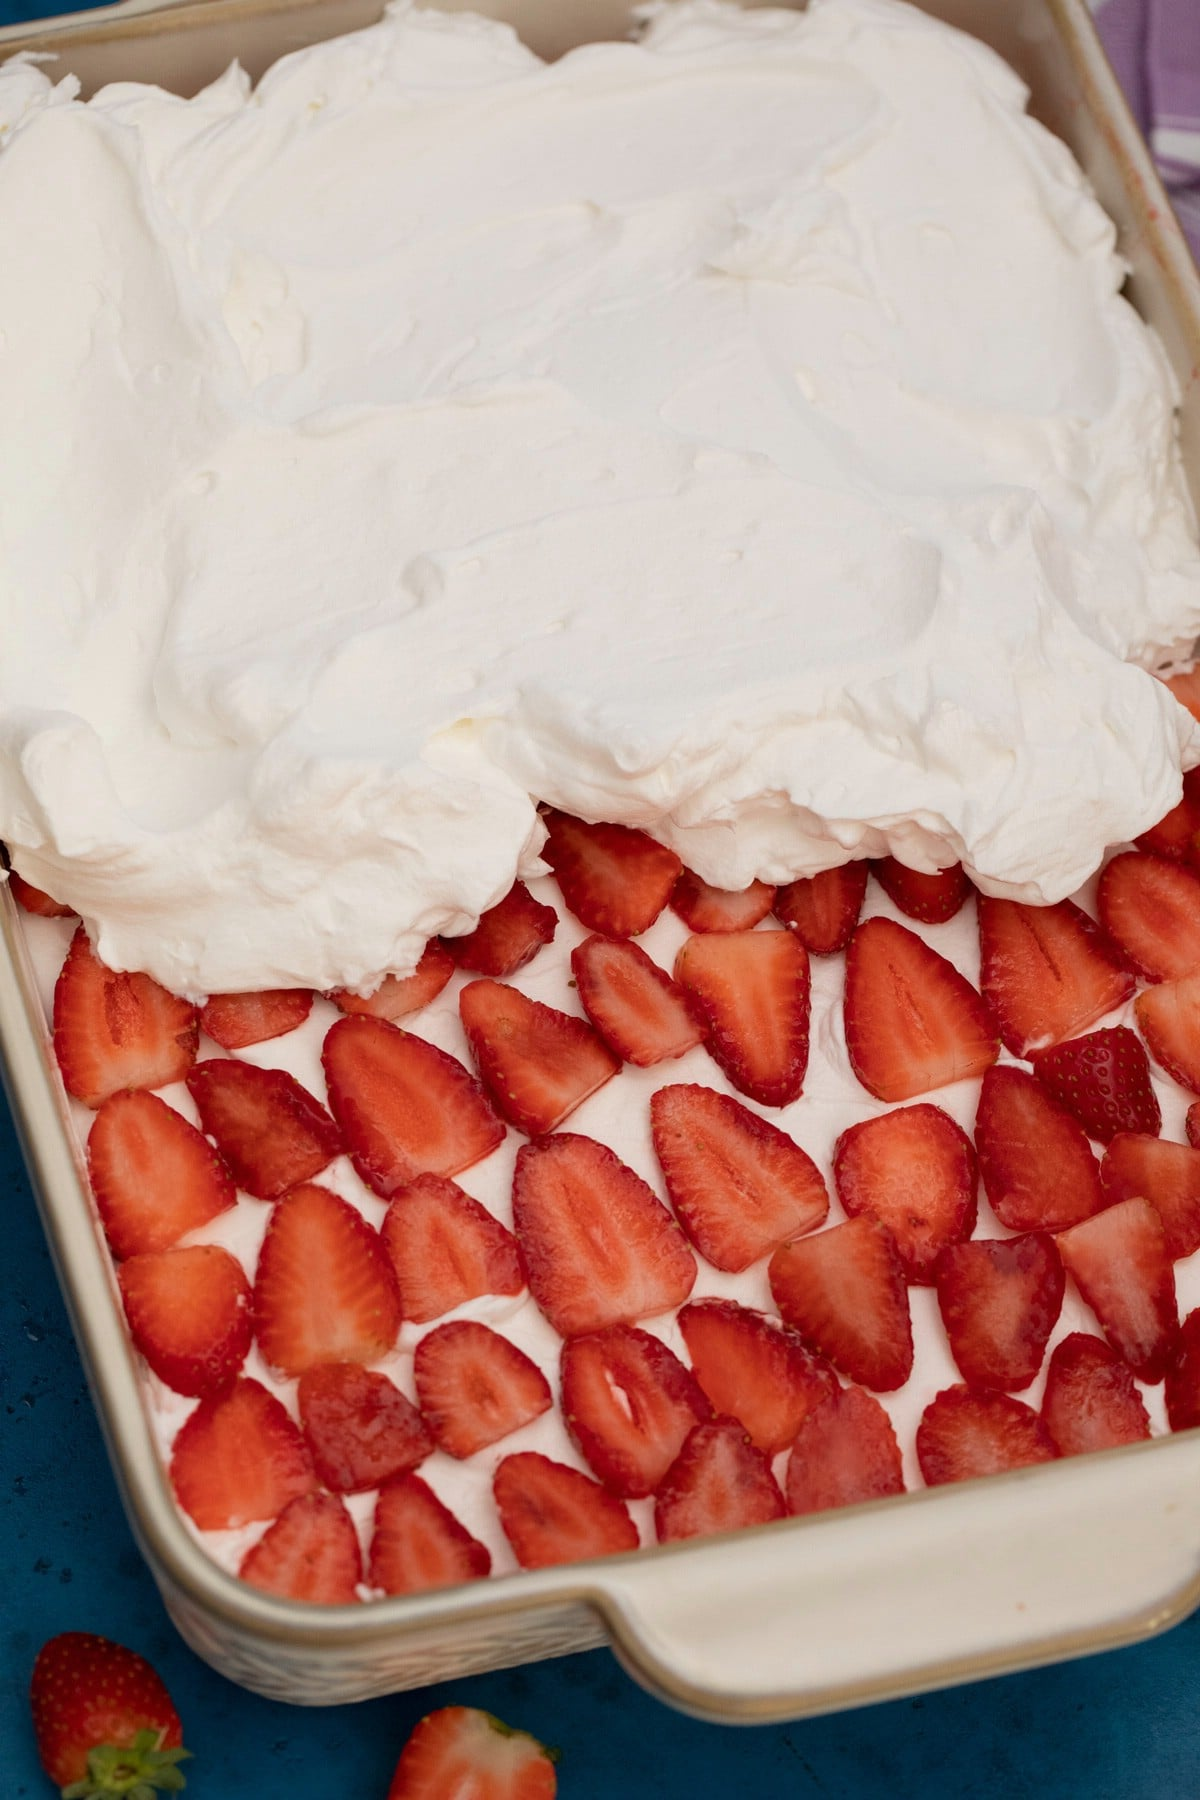 Adding whipped cream over strawberries